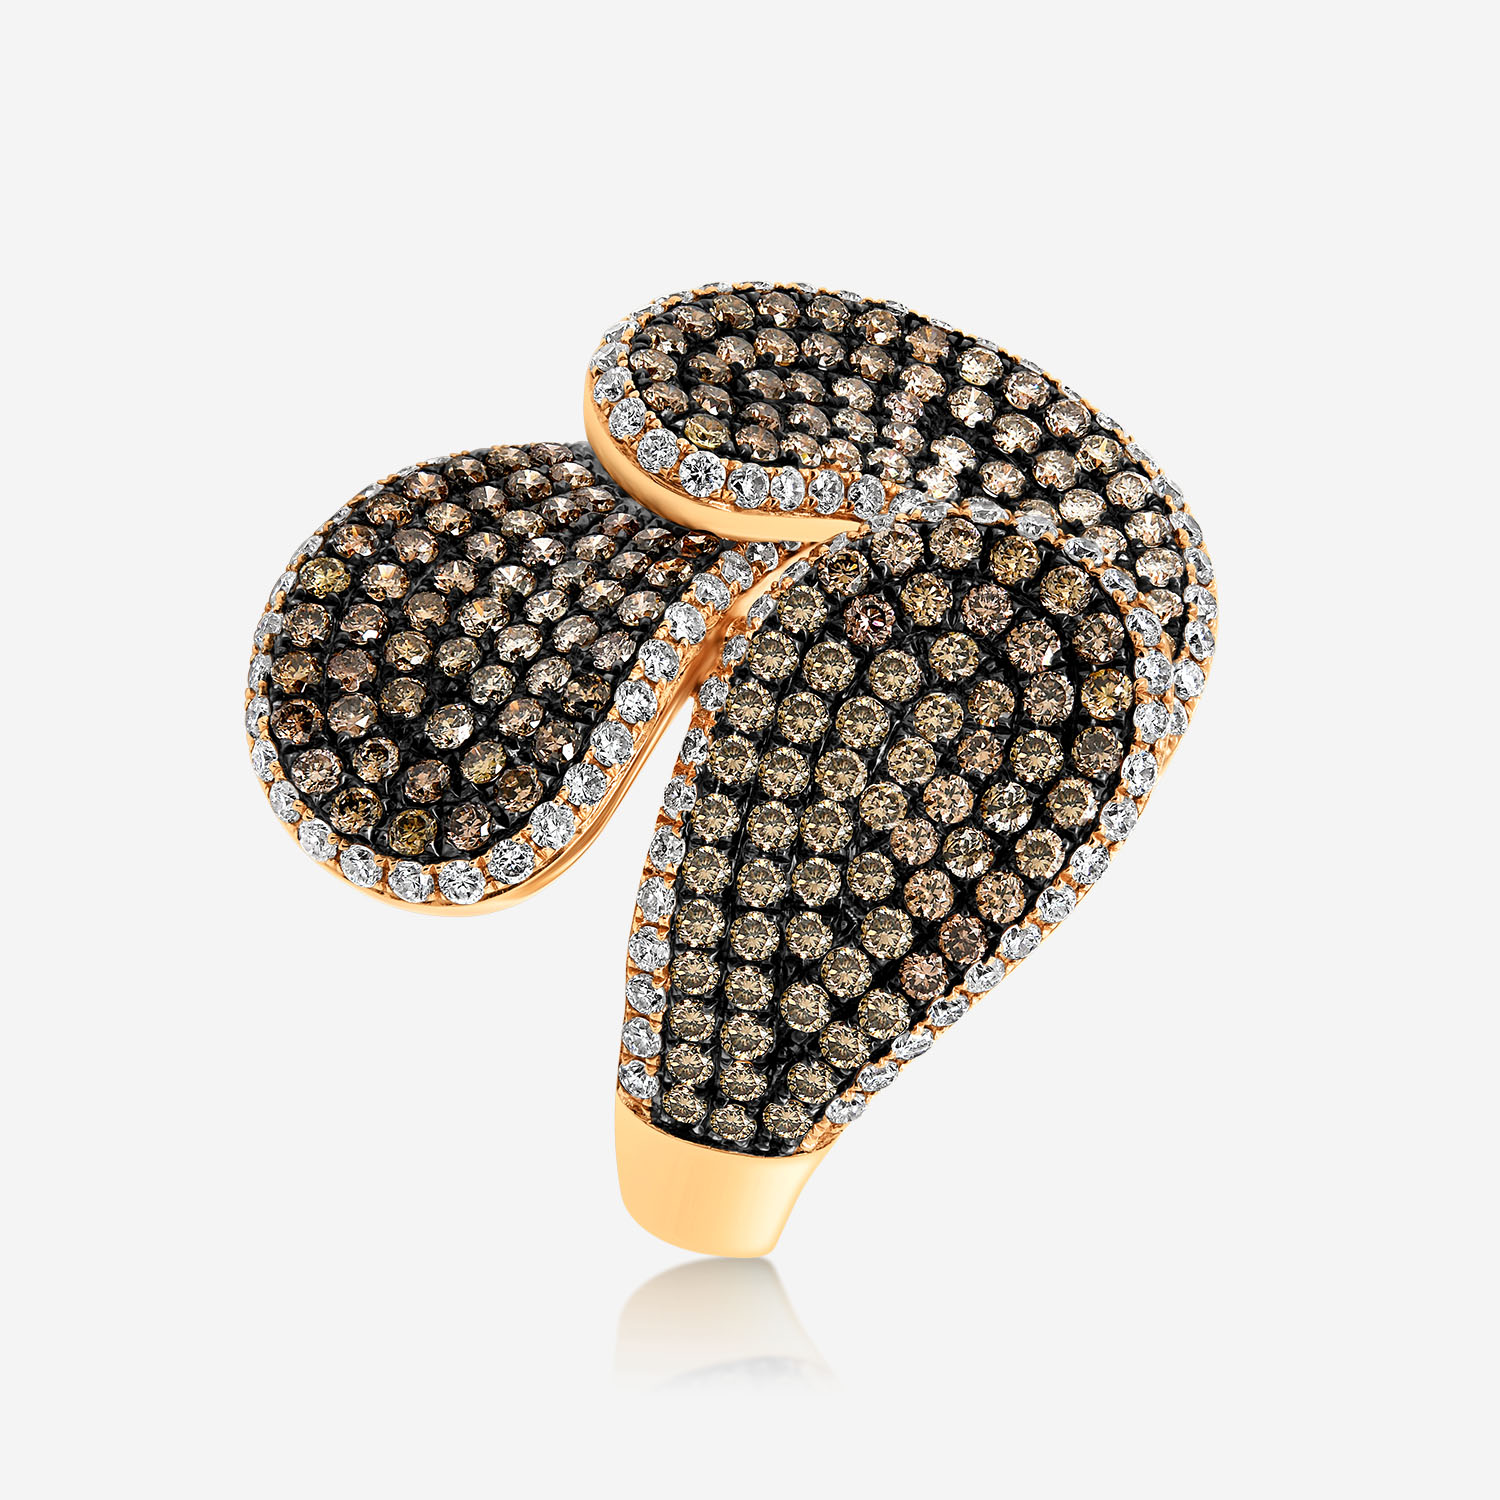 Diamond Rings Gold ring with white and brown diamonds Pink Brown Diamond <br/>White Diamonds